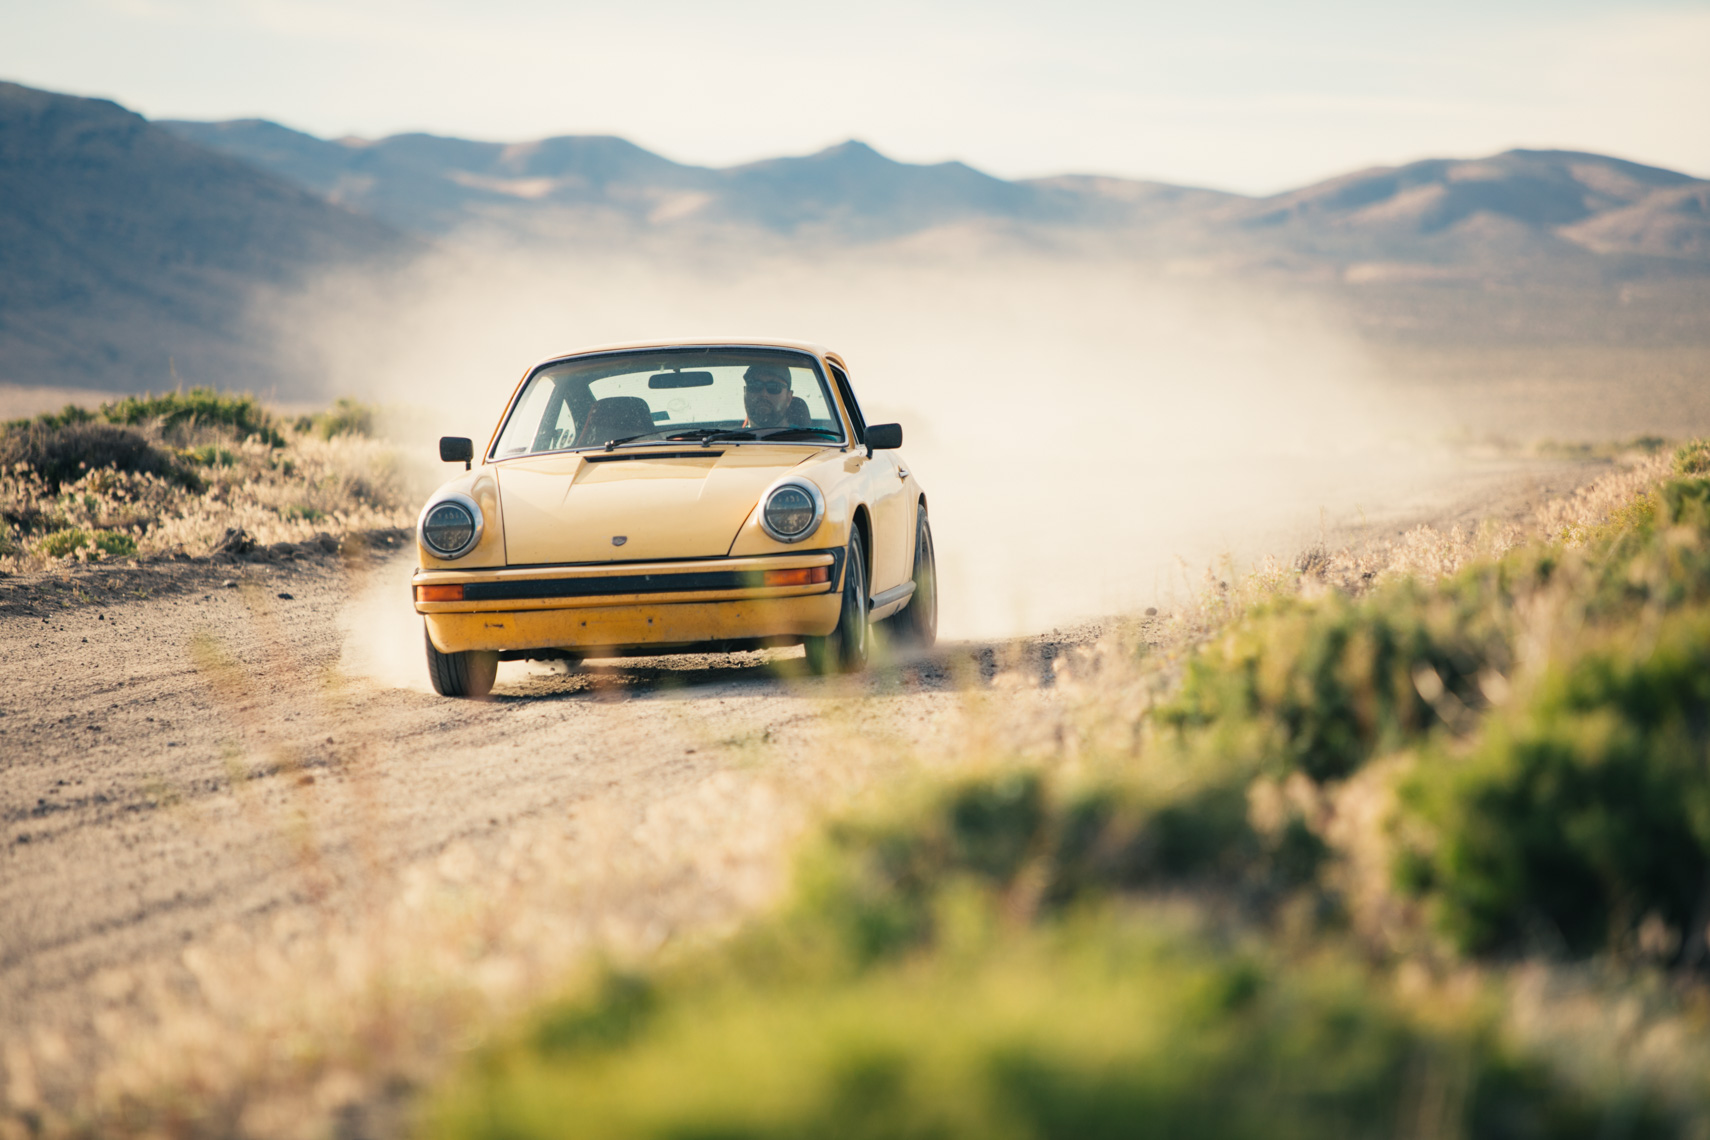 Porsche Driving On Dirt Road